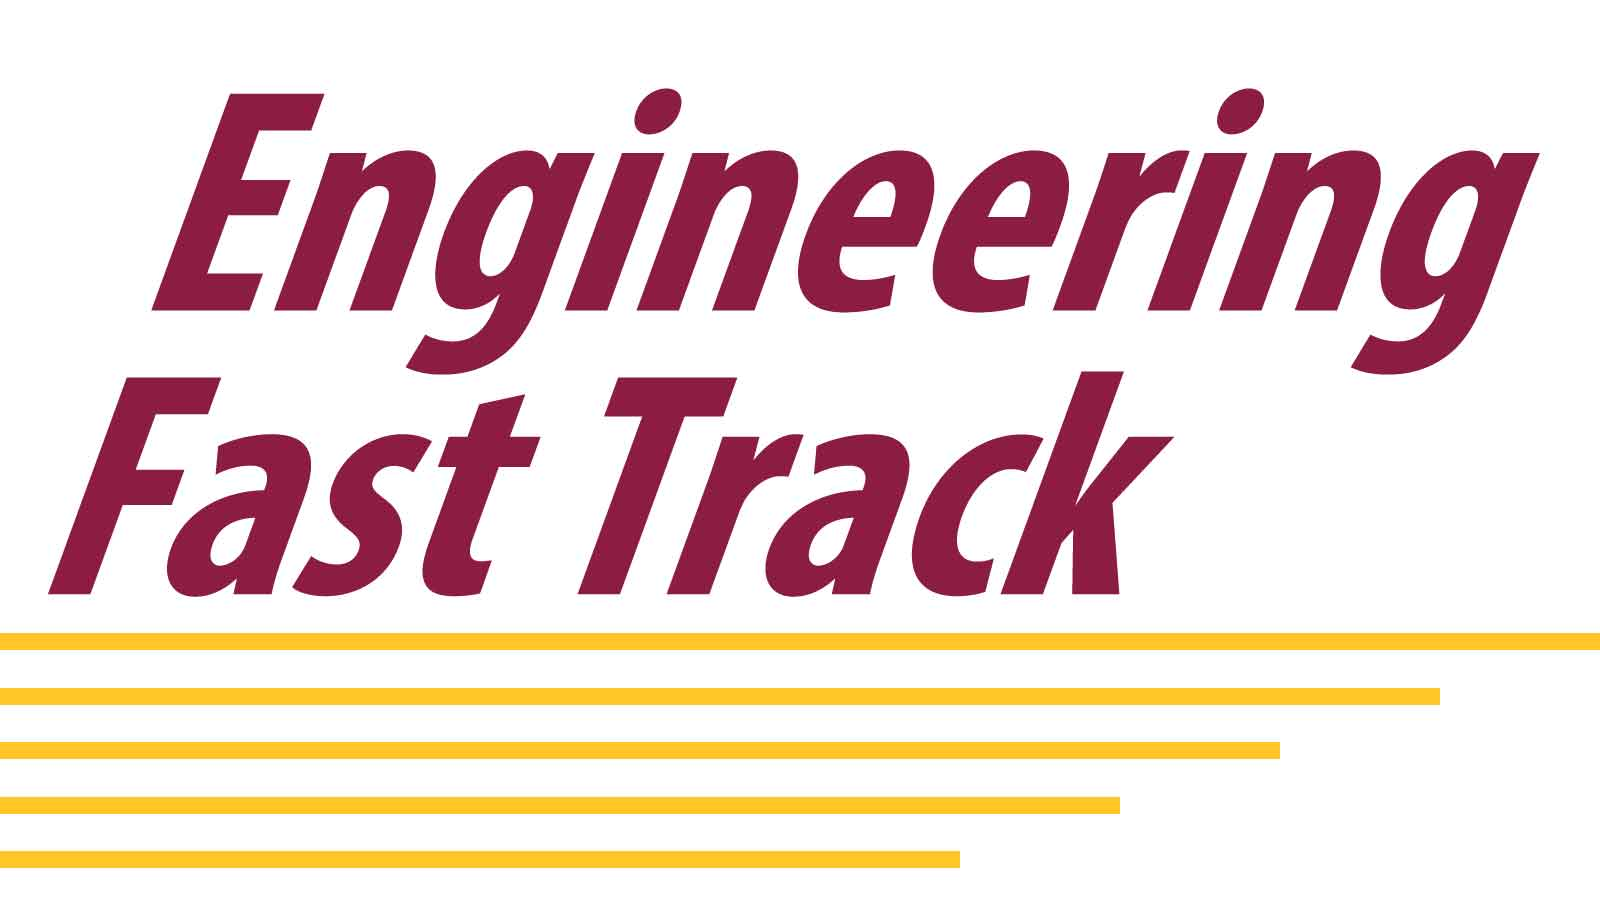 Engineering Fast Track logo